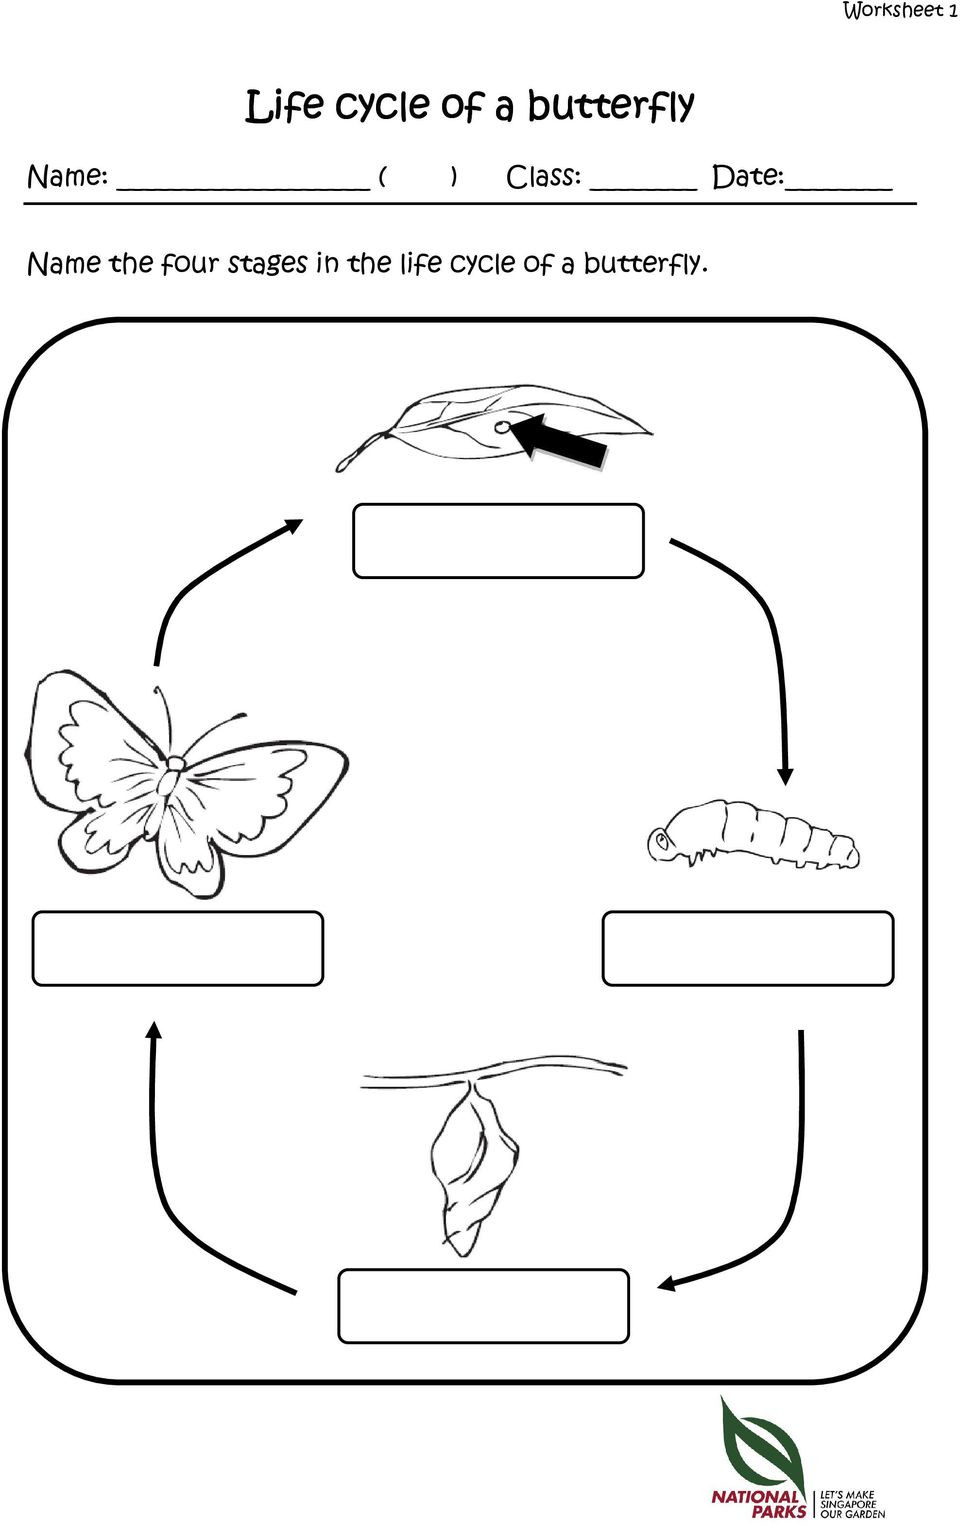 Butterfly Life Cycle Worksheet 2 Worksheets Caterpillars Of Singapore S butterflies